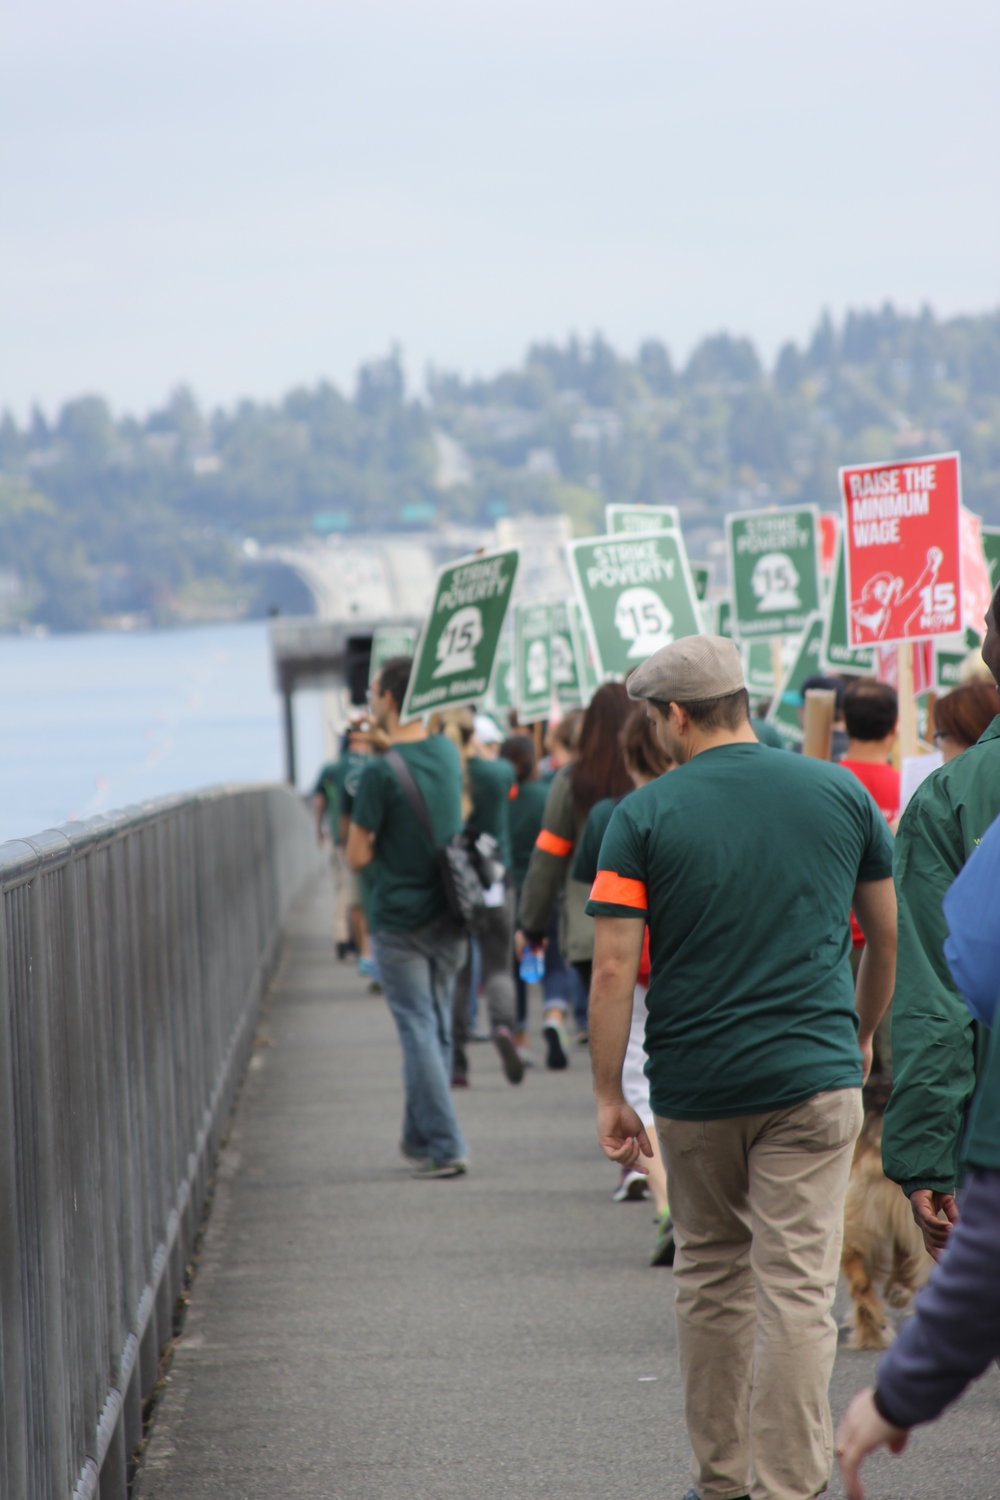 We marched over the bridge, where a boat was shadowing us waving WA-$15 signs, through Mercer Island, and ended in downtown Bellevue clocking in at nearly ten miles!